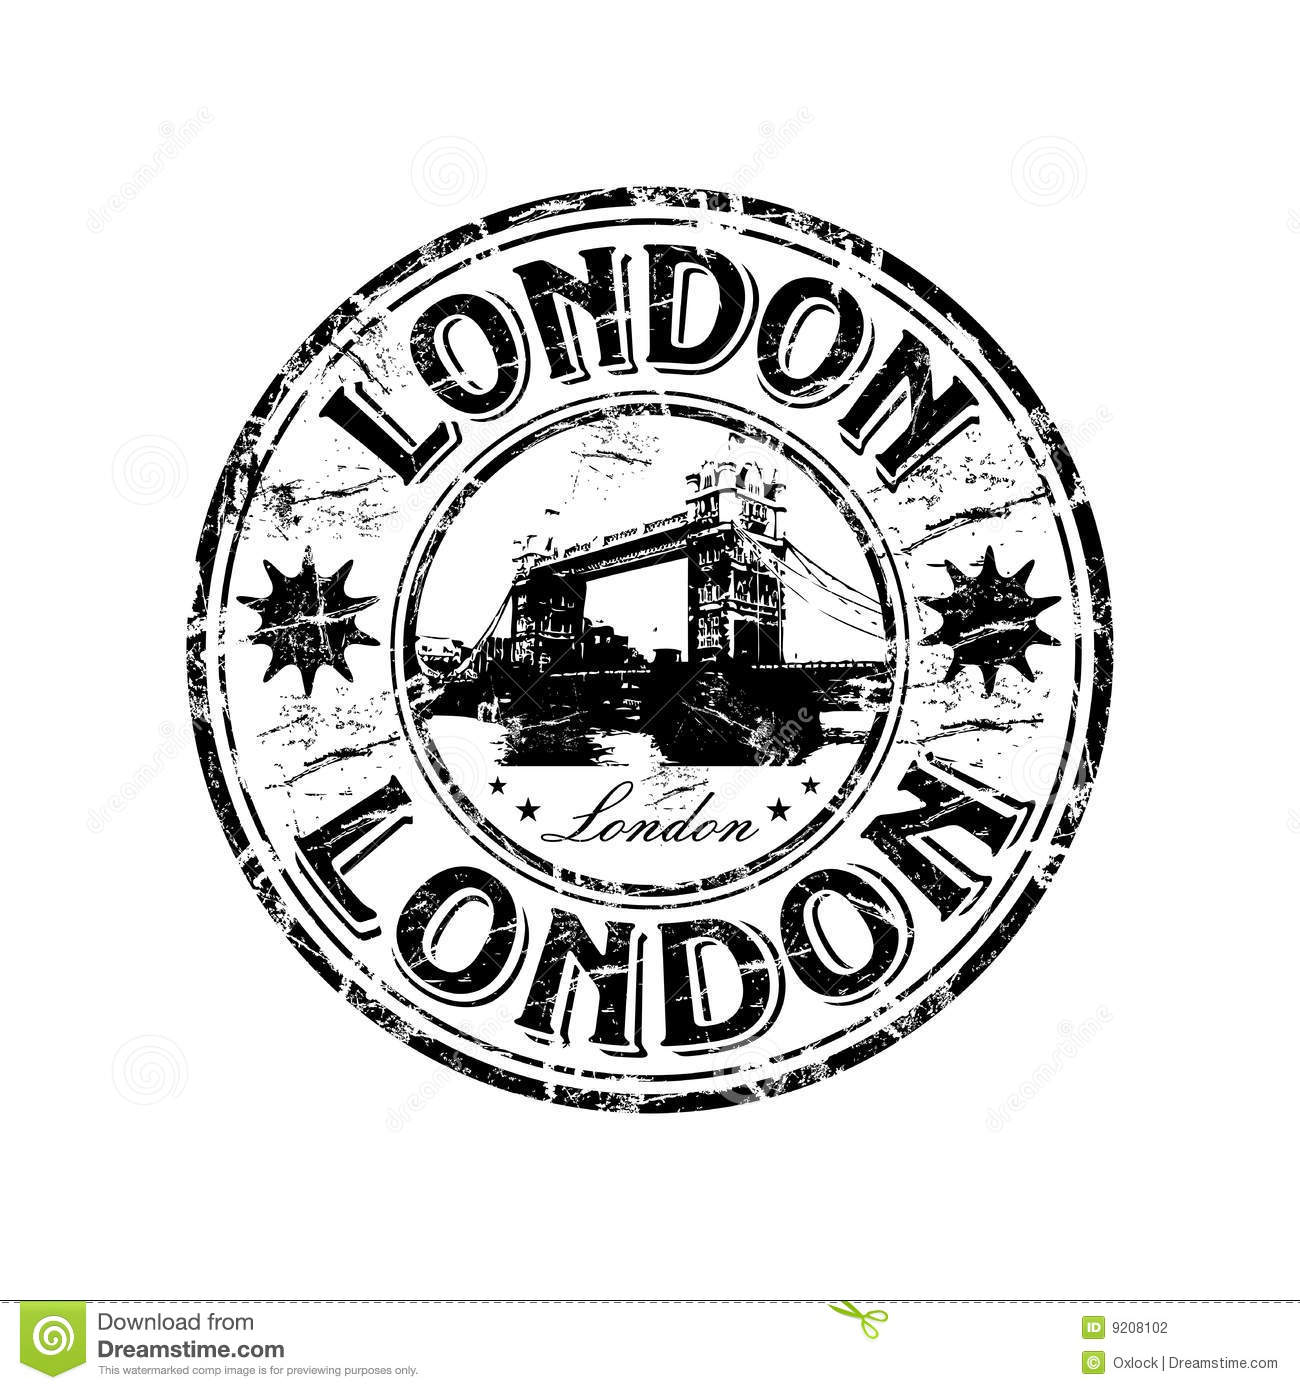 London Grunge Rubber Stamp Stock Vector Illustration Of